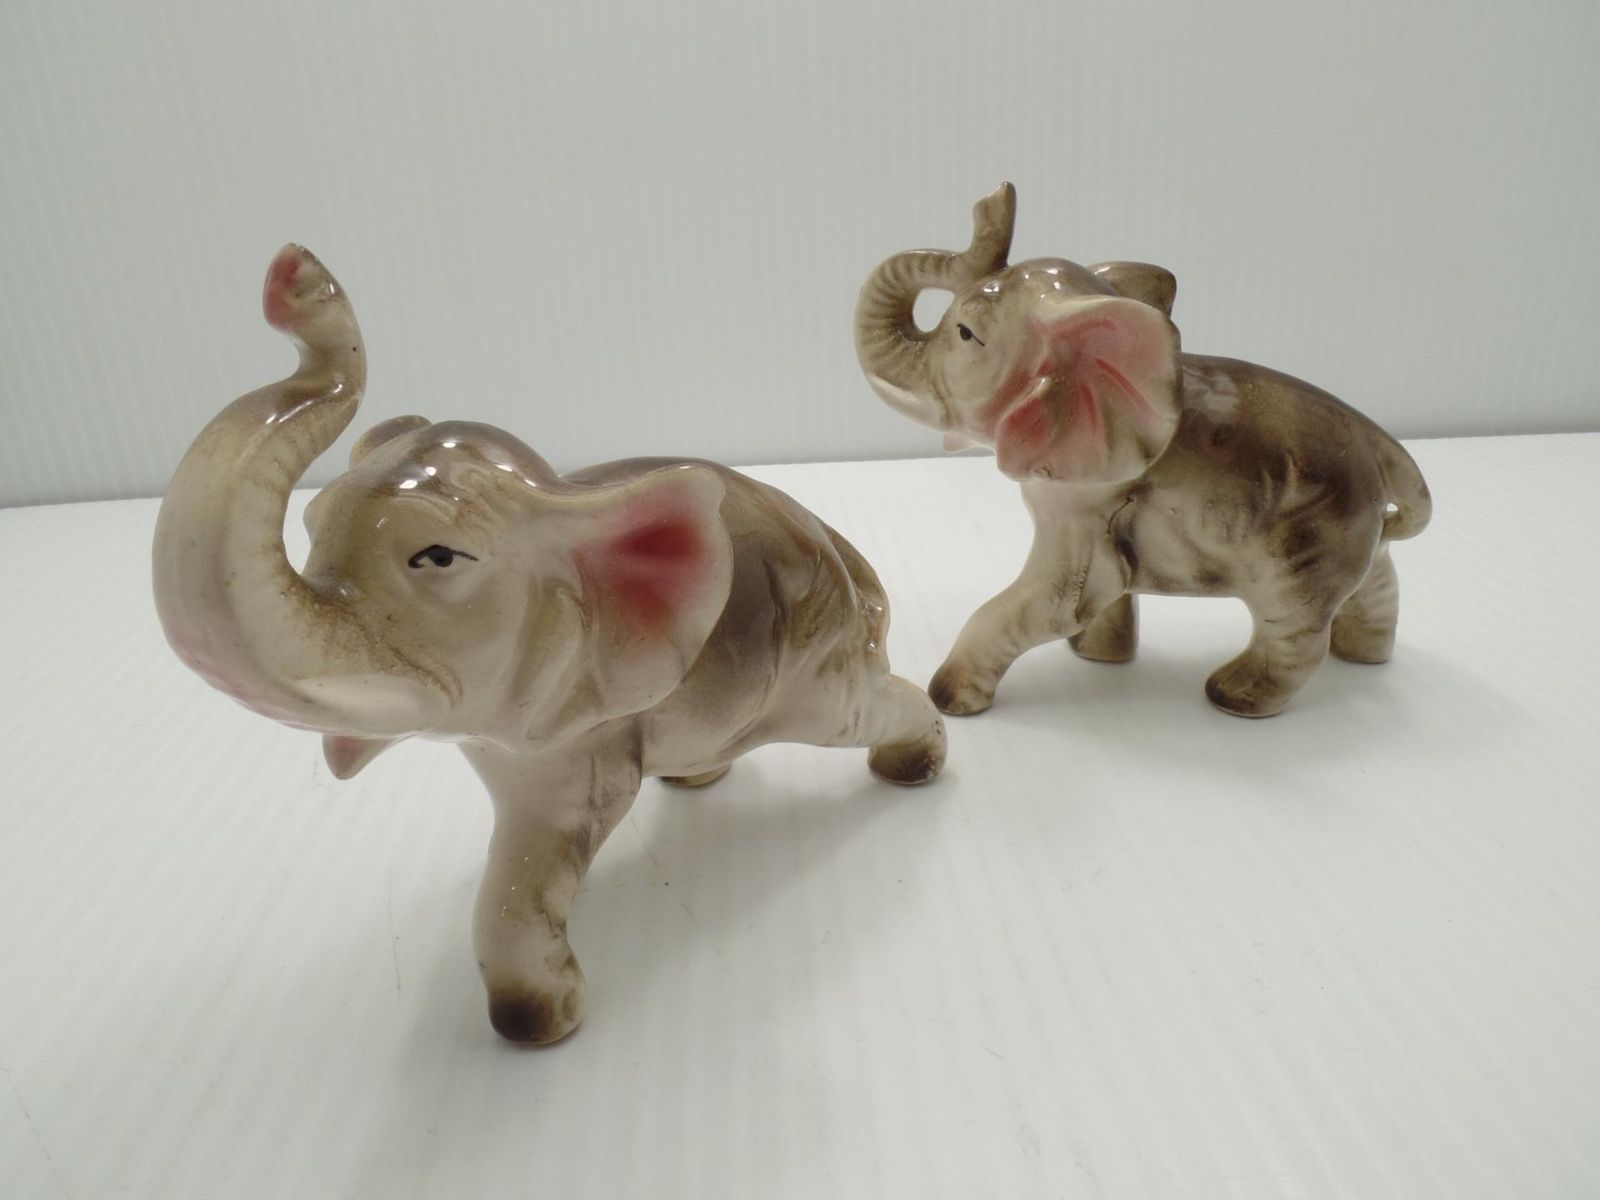 "Primary image for Elephant Figures Figurines Trunks Up Good Luck 4"" Japan Ceramic or Porcelain VTG"